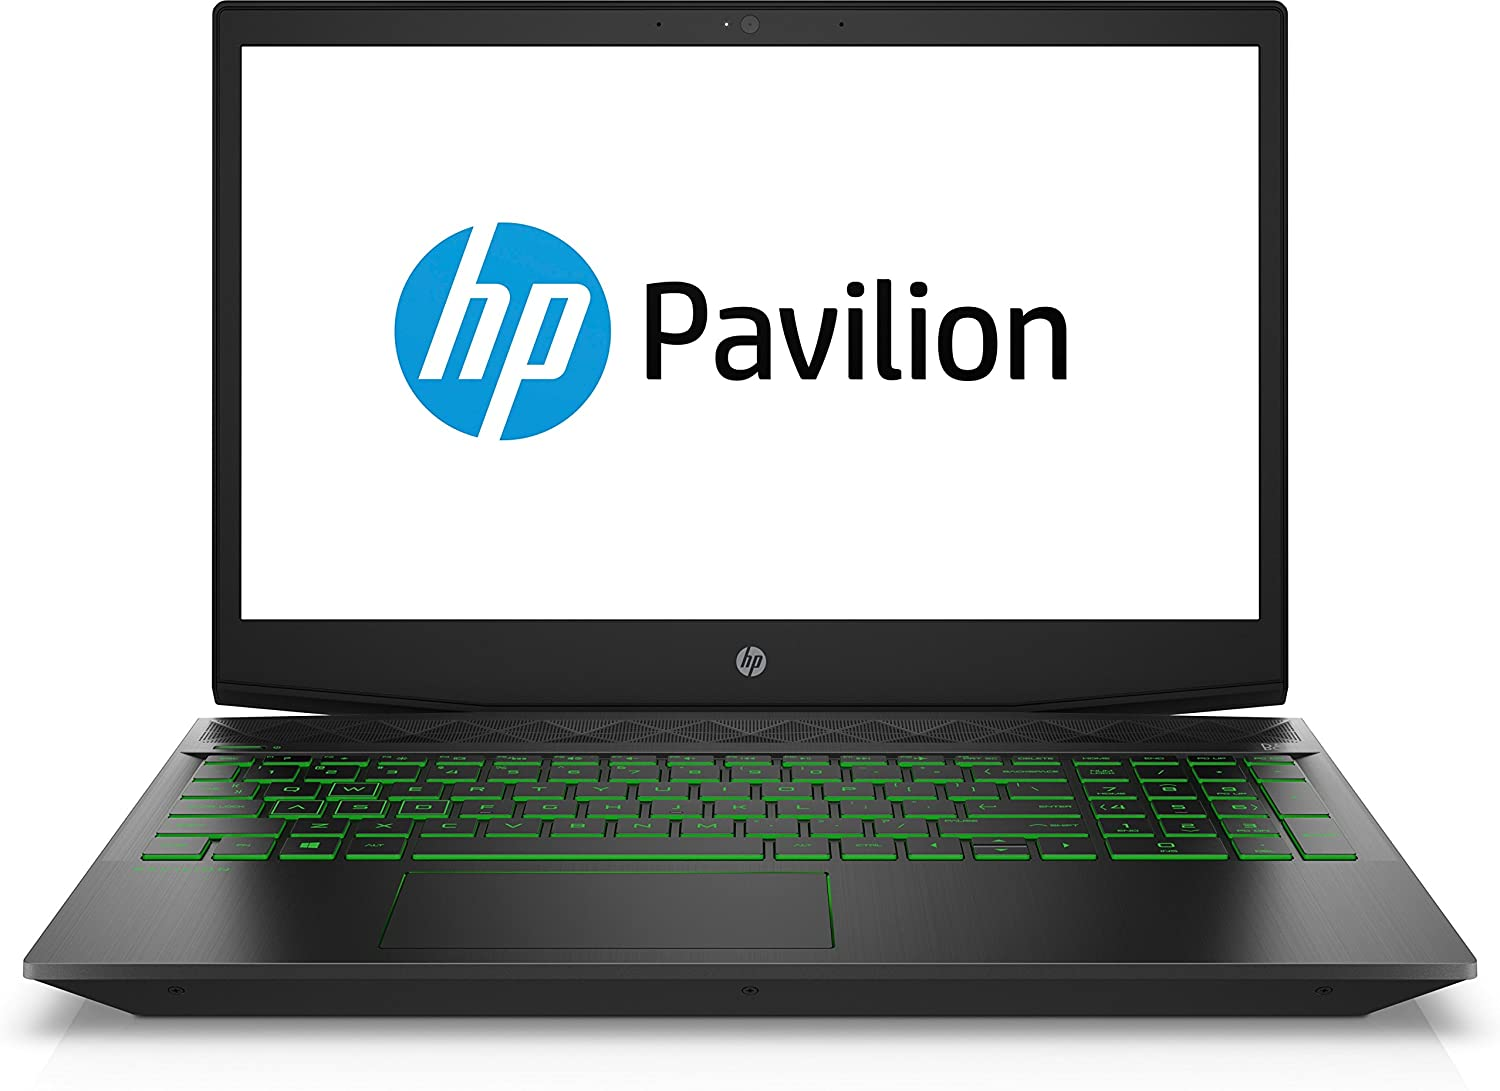 "HP Pavilion 15.6"" Gaming Laptop Intel Core i5+8300H, NVIDIA GeForce GTX 1050 4GB GPU, 8GB RAM, 16 GB Intel Optane + 1TB HDD Storage, Windows 10"